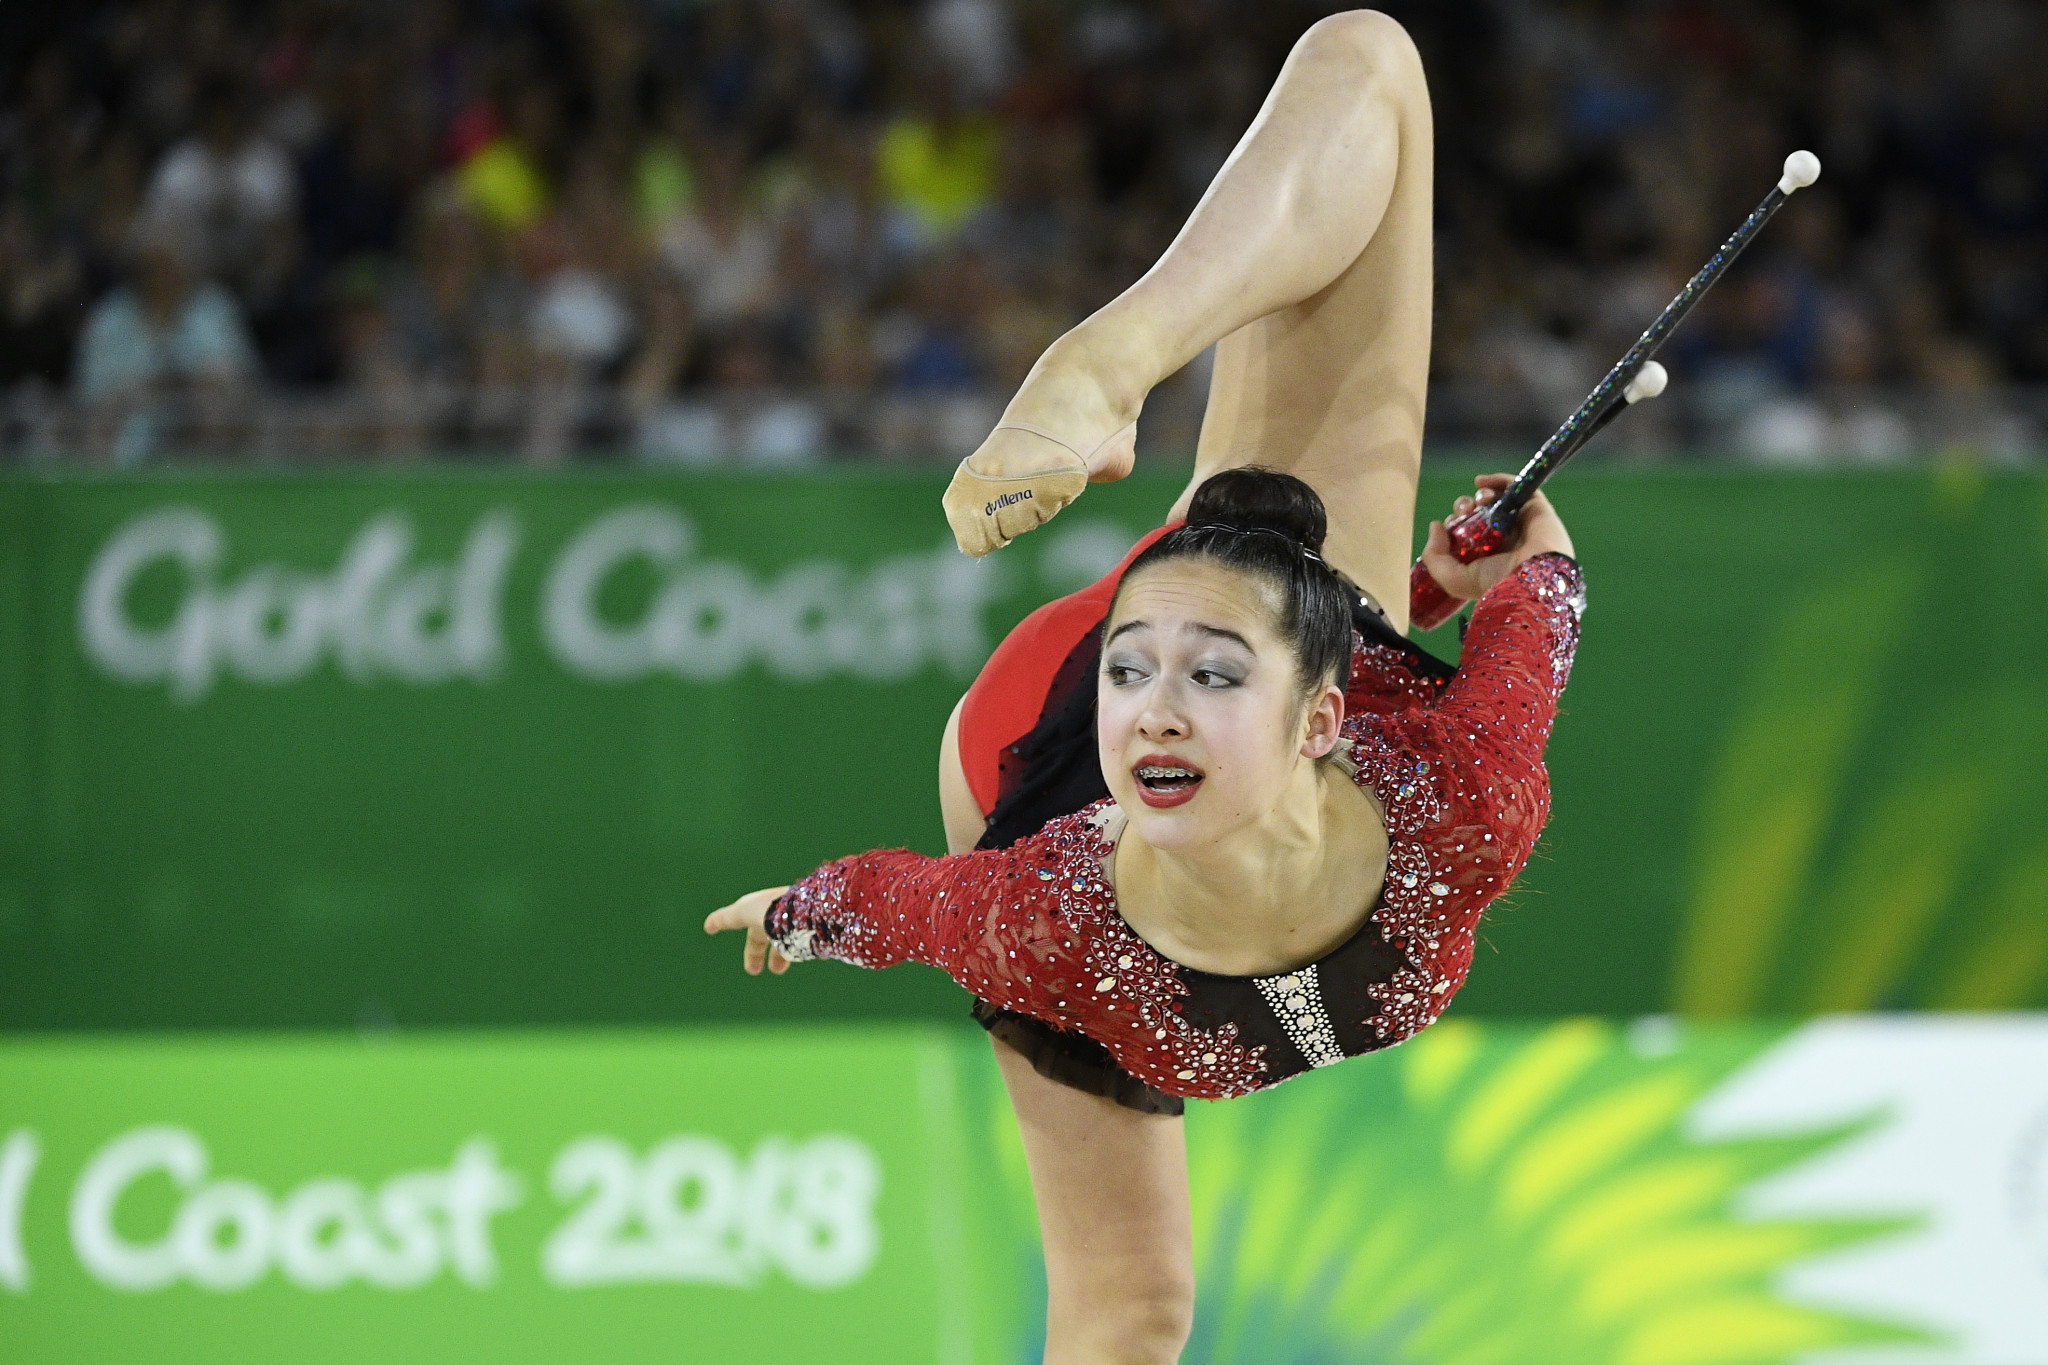 Canada's Sophie Crane overcame a mistake at the beginning of her routine to win the Commonwealth Games gold medal in the clubs at Gold Coast 2018 ©Getty Images